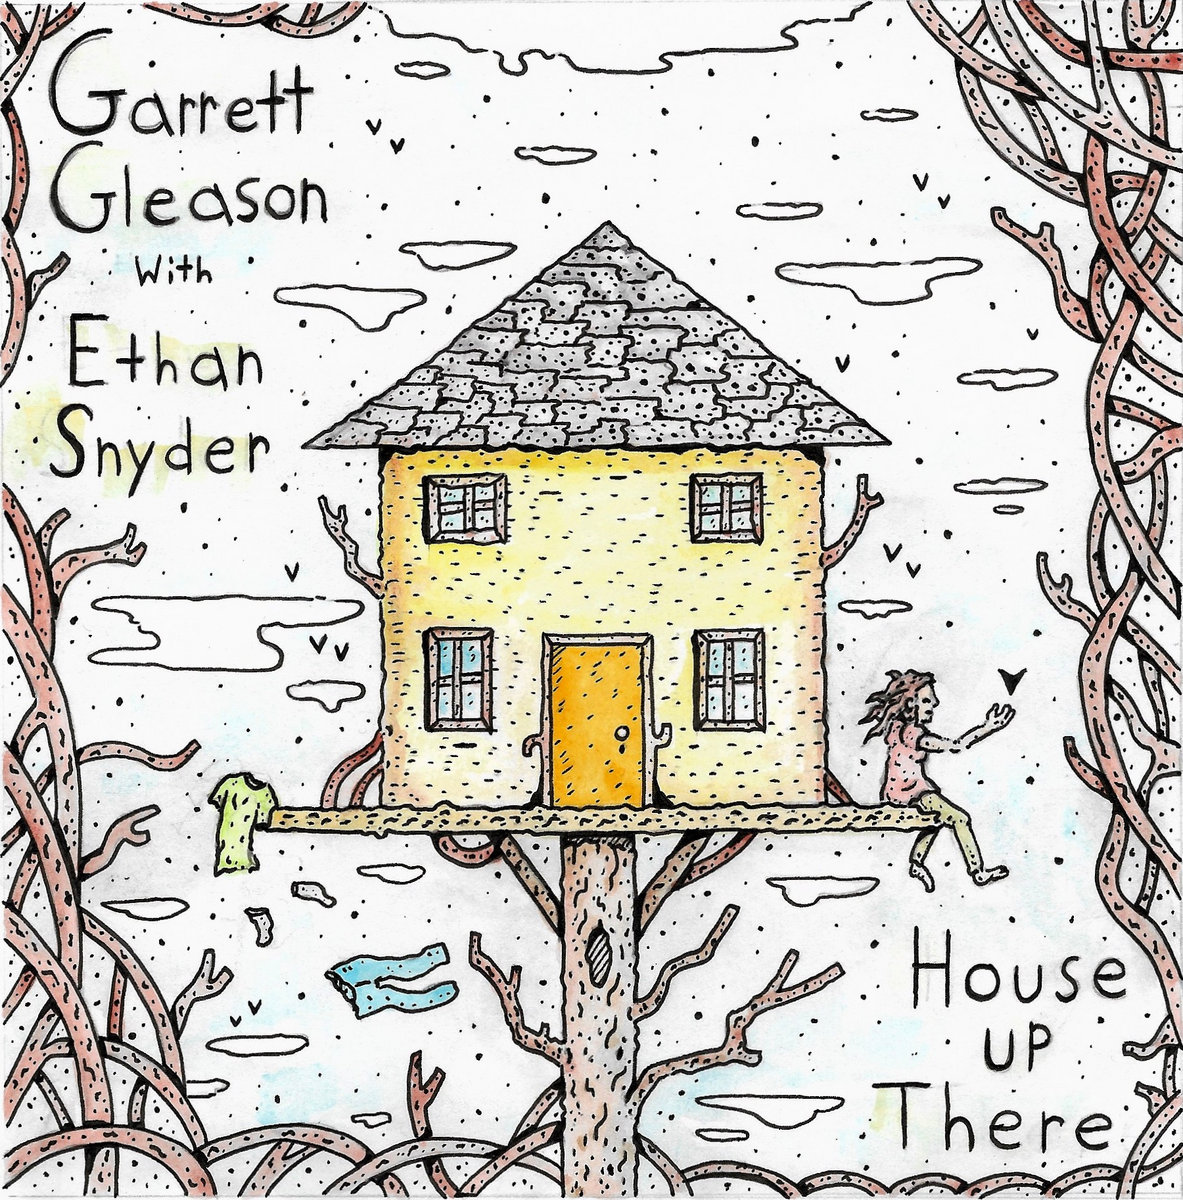 Garrett Gleason & Ethan Snyder – House Up There